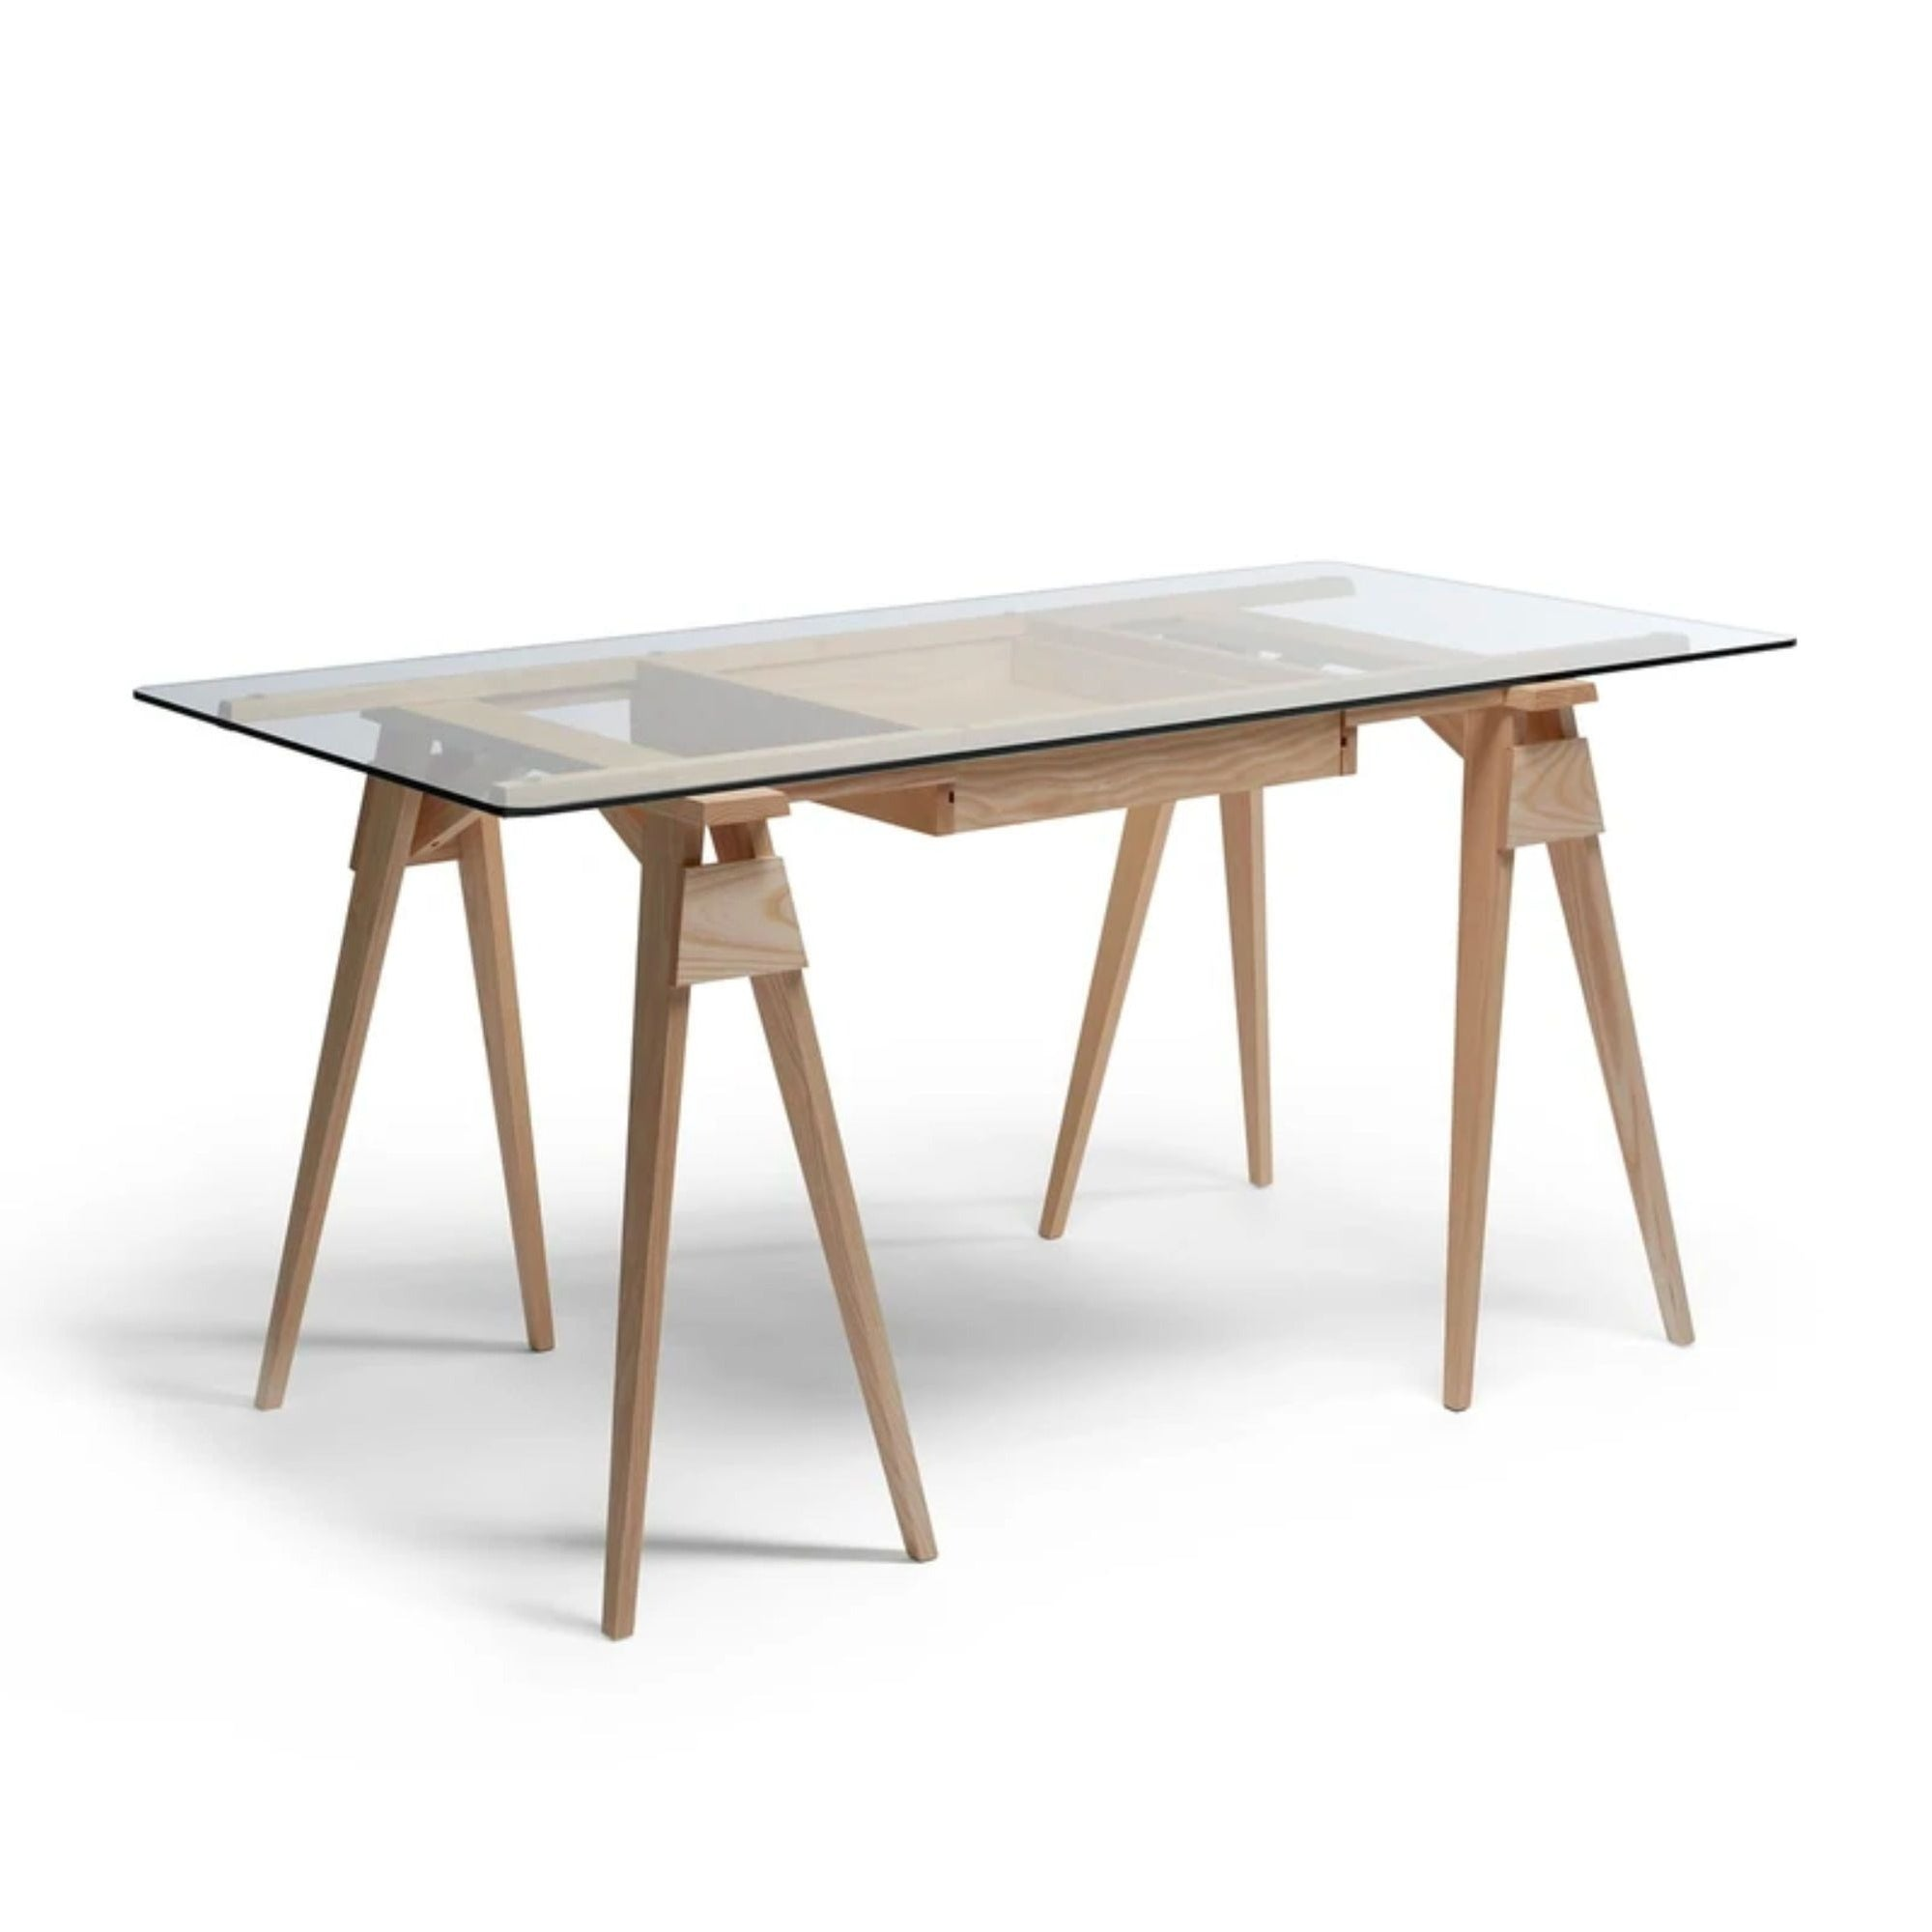 Design House Stockholm Arco desk, oak